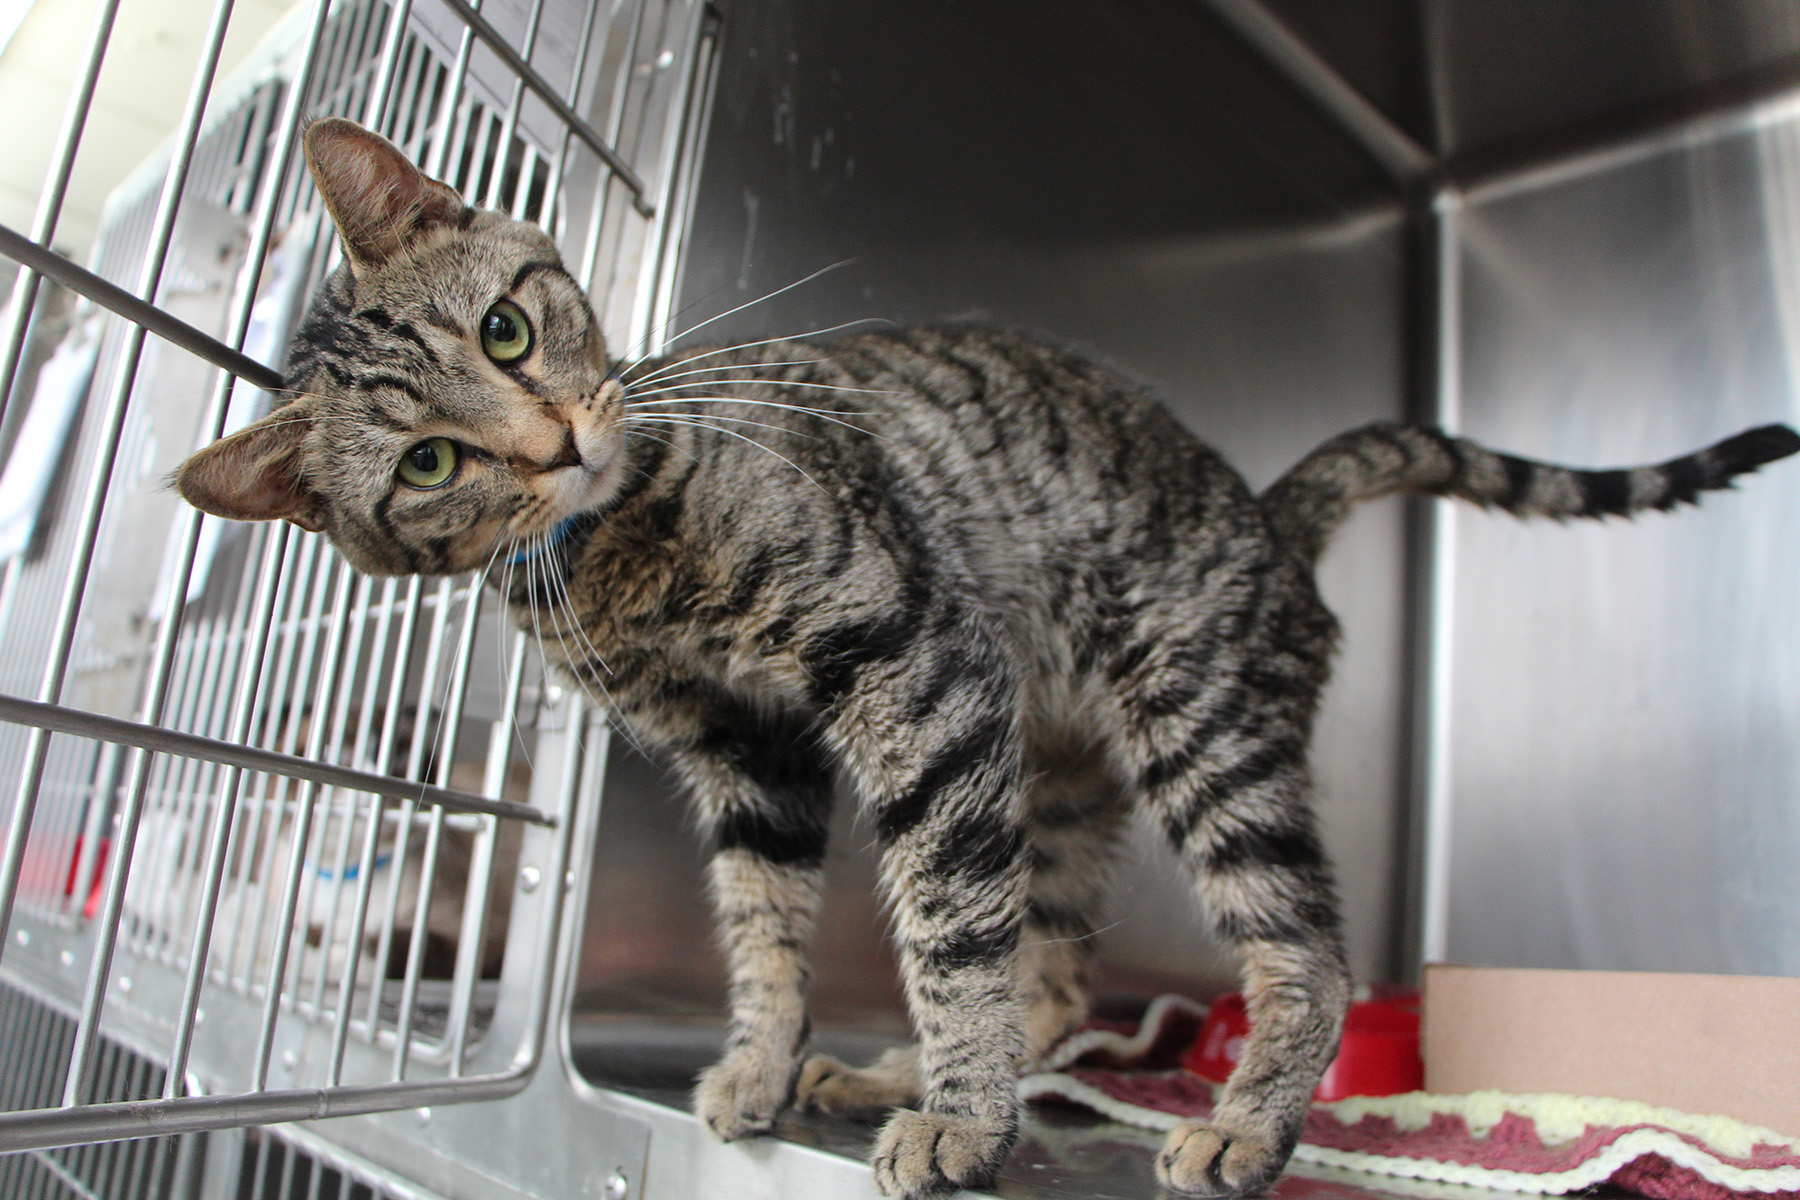 The Lawrence Humane Society provides shelter and care to animals in need.